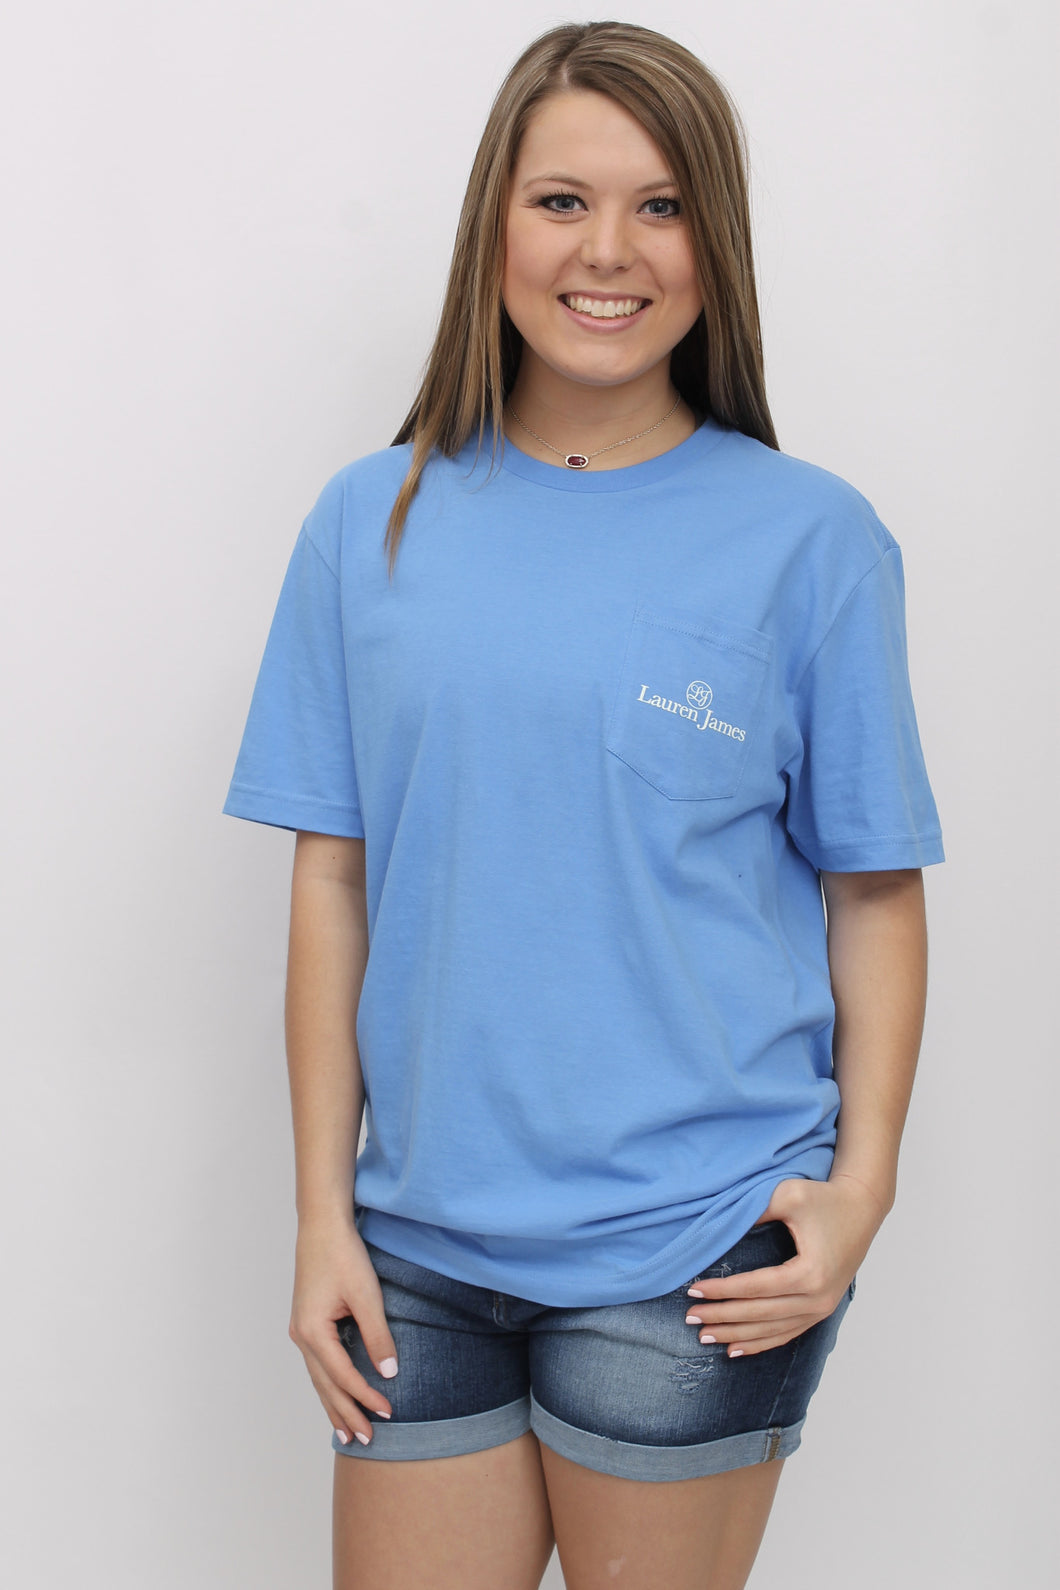 Delta Blue S/S- Lauren James Magnolia Mindset Short Sleeve Front